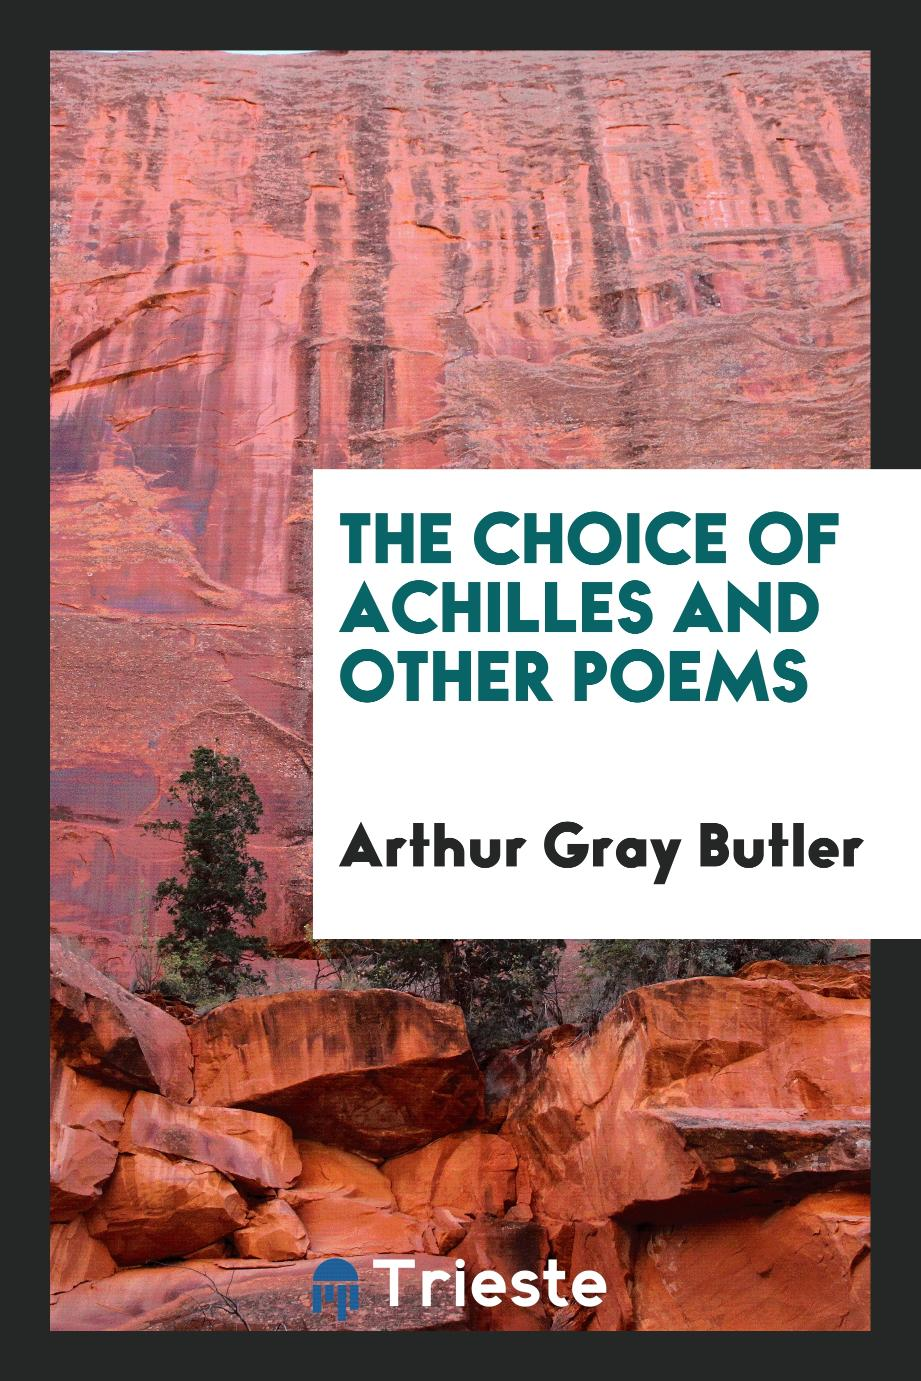 The Choice of Achilles and Other Poems